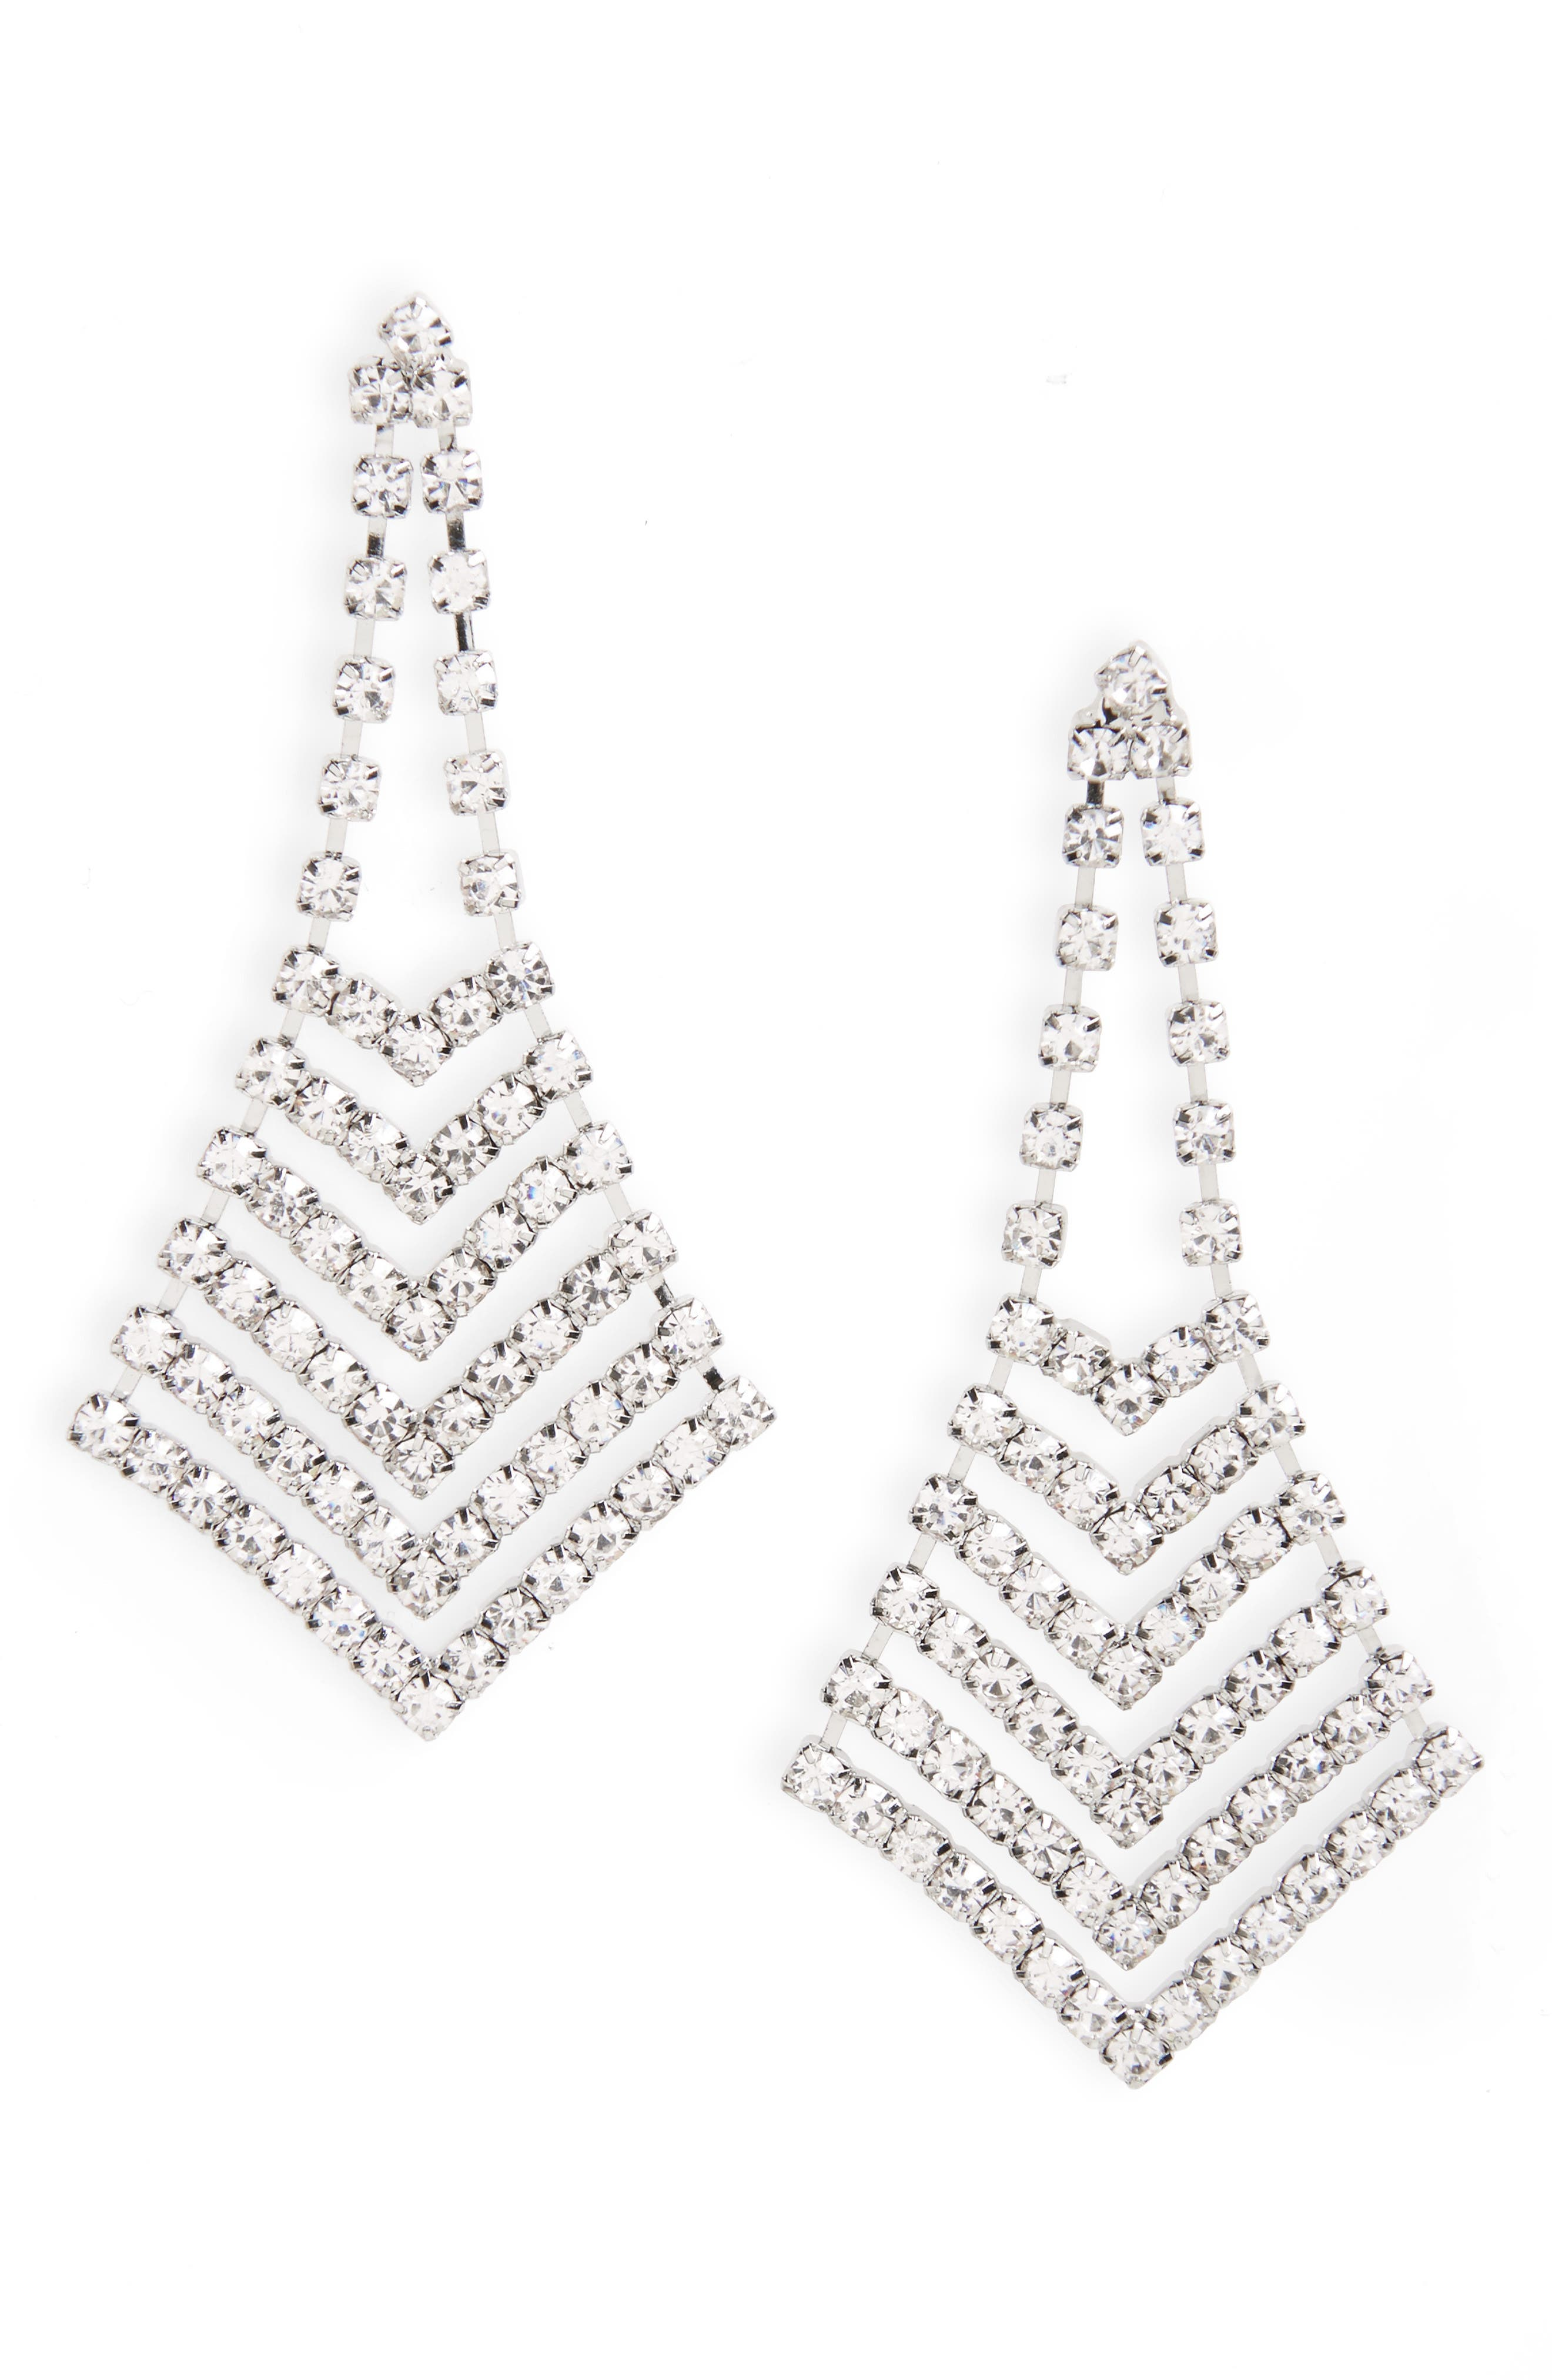 Crystal Chevron Chandelier Earrings,                             Main thumbnail 1, color,                             044